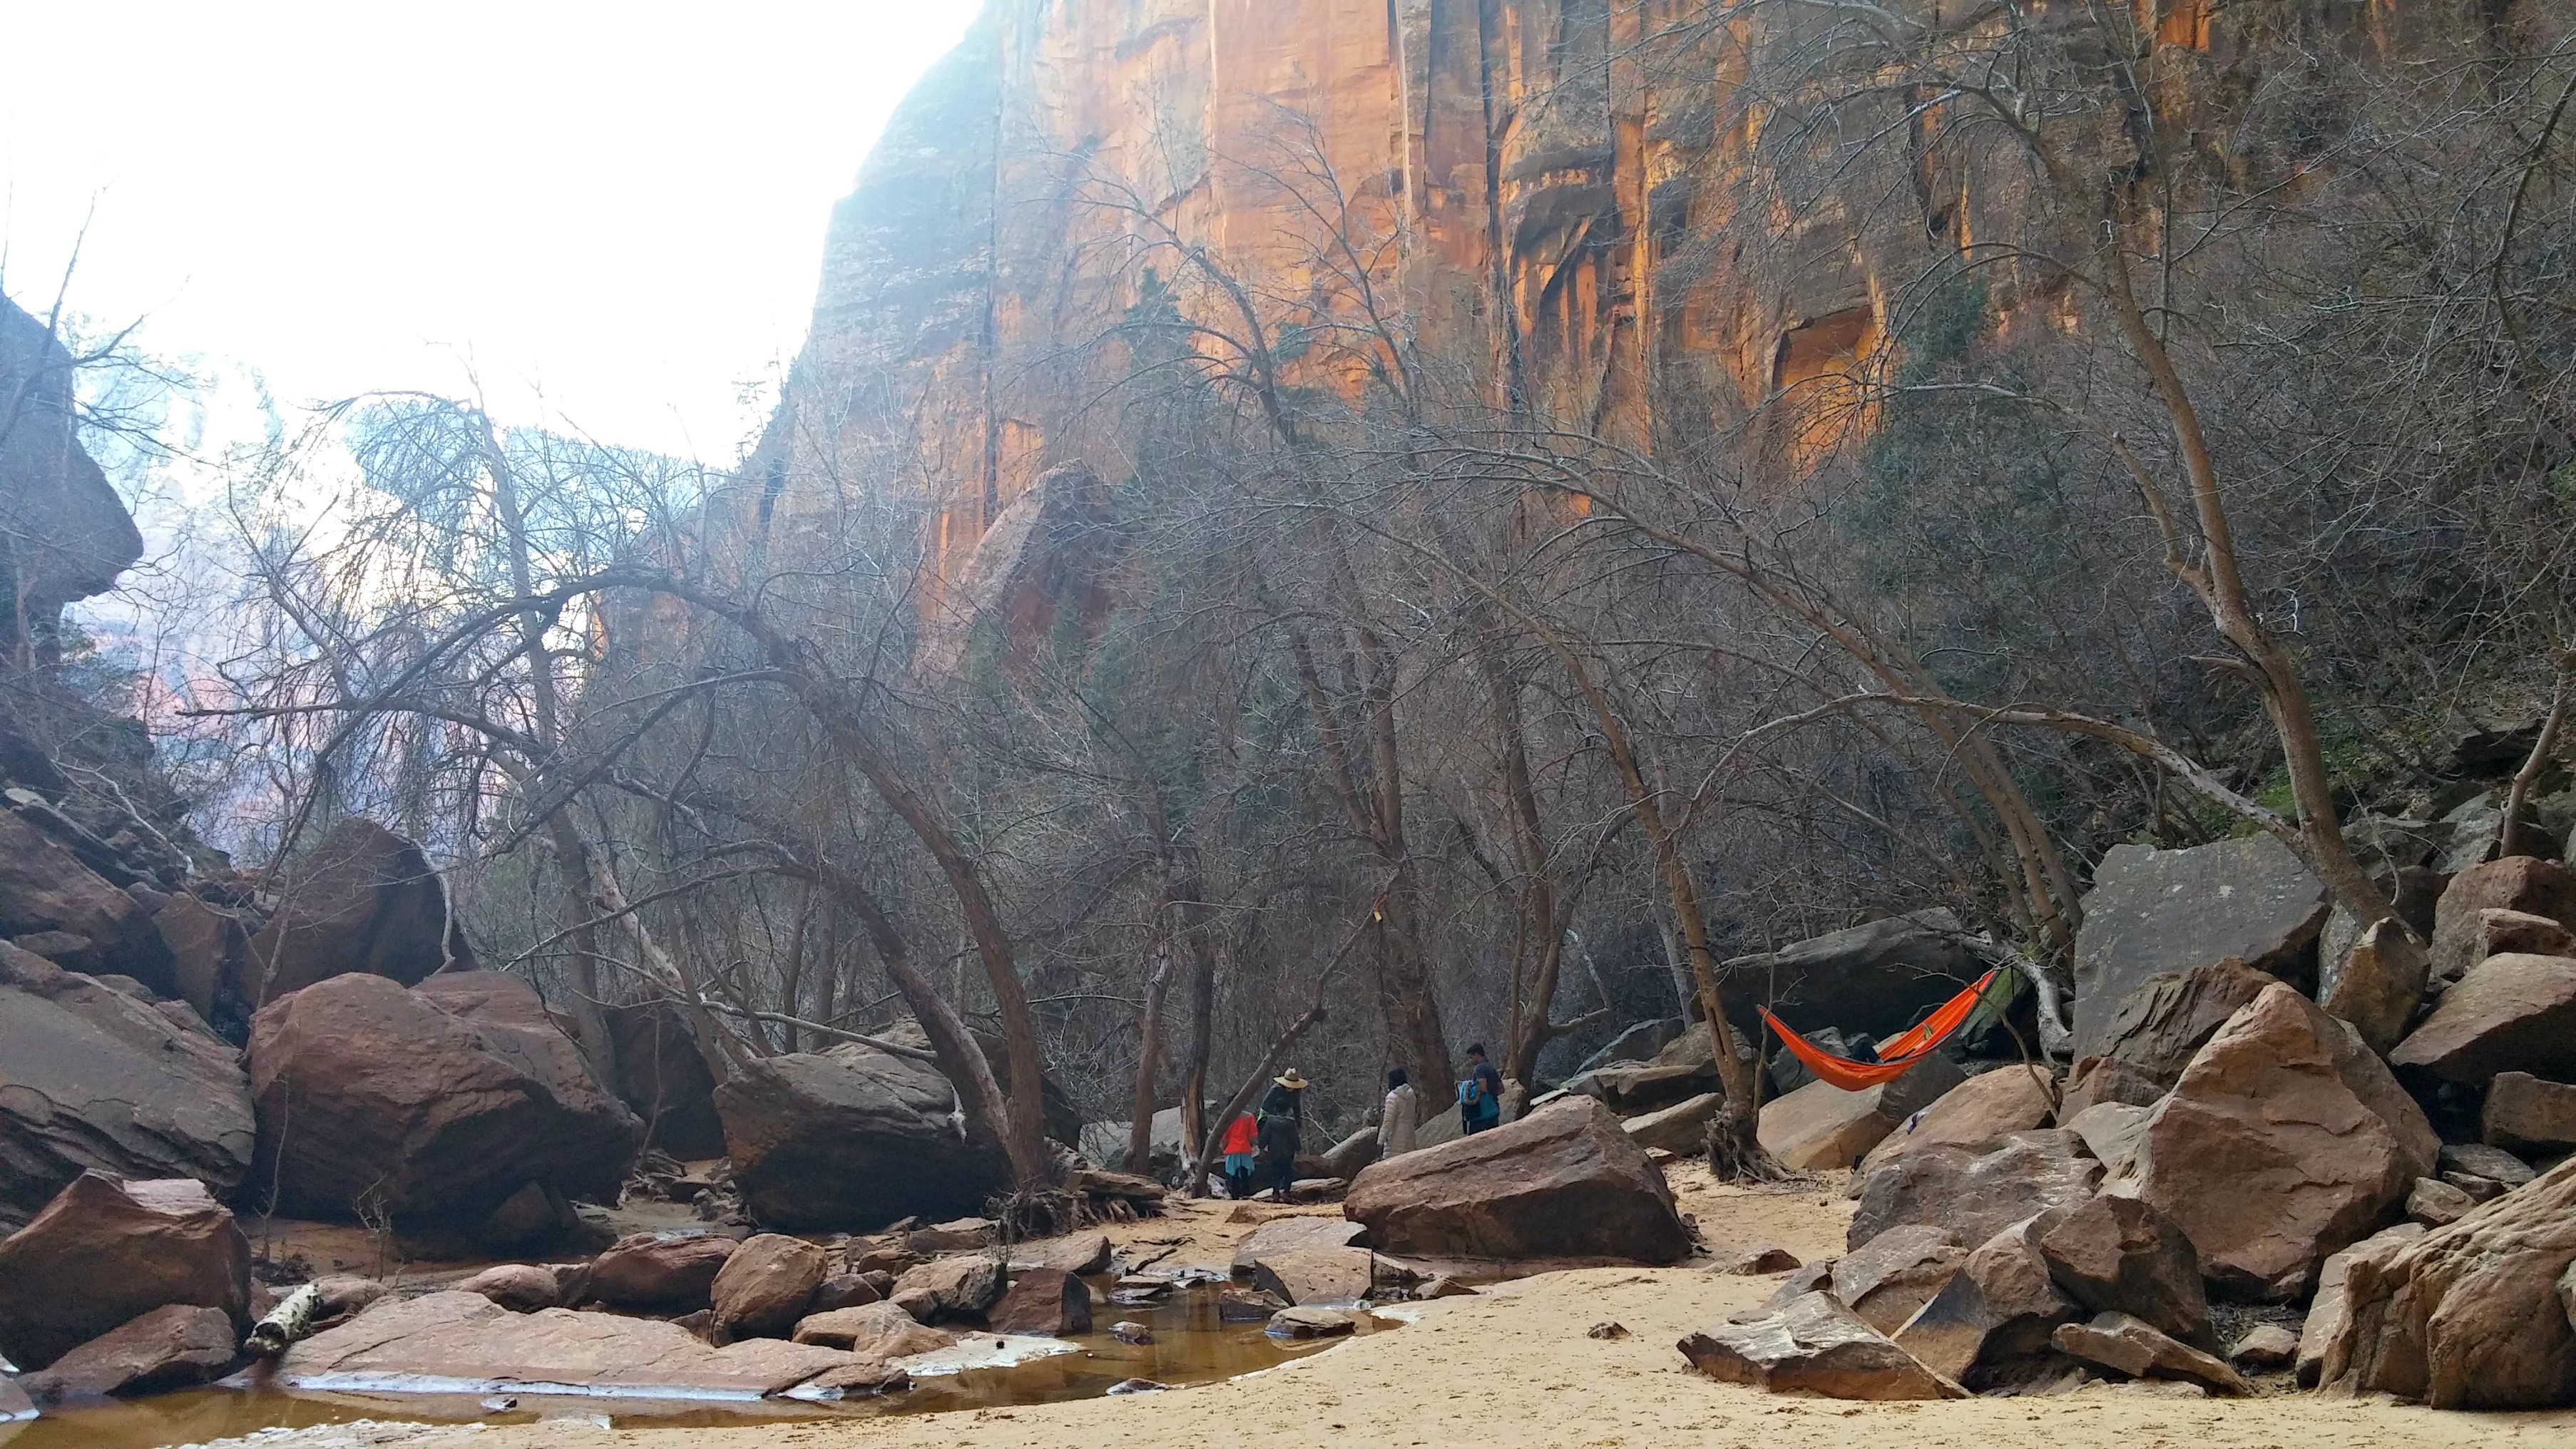 Hiking Emerald Pool Trail In Zion National Park